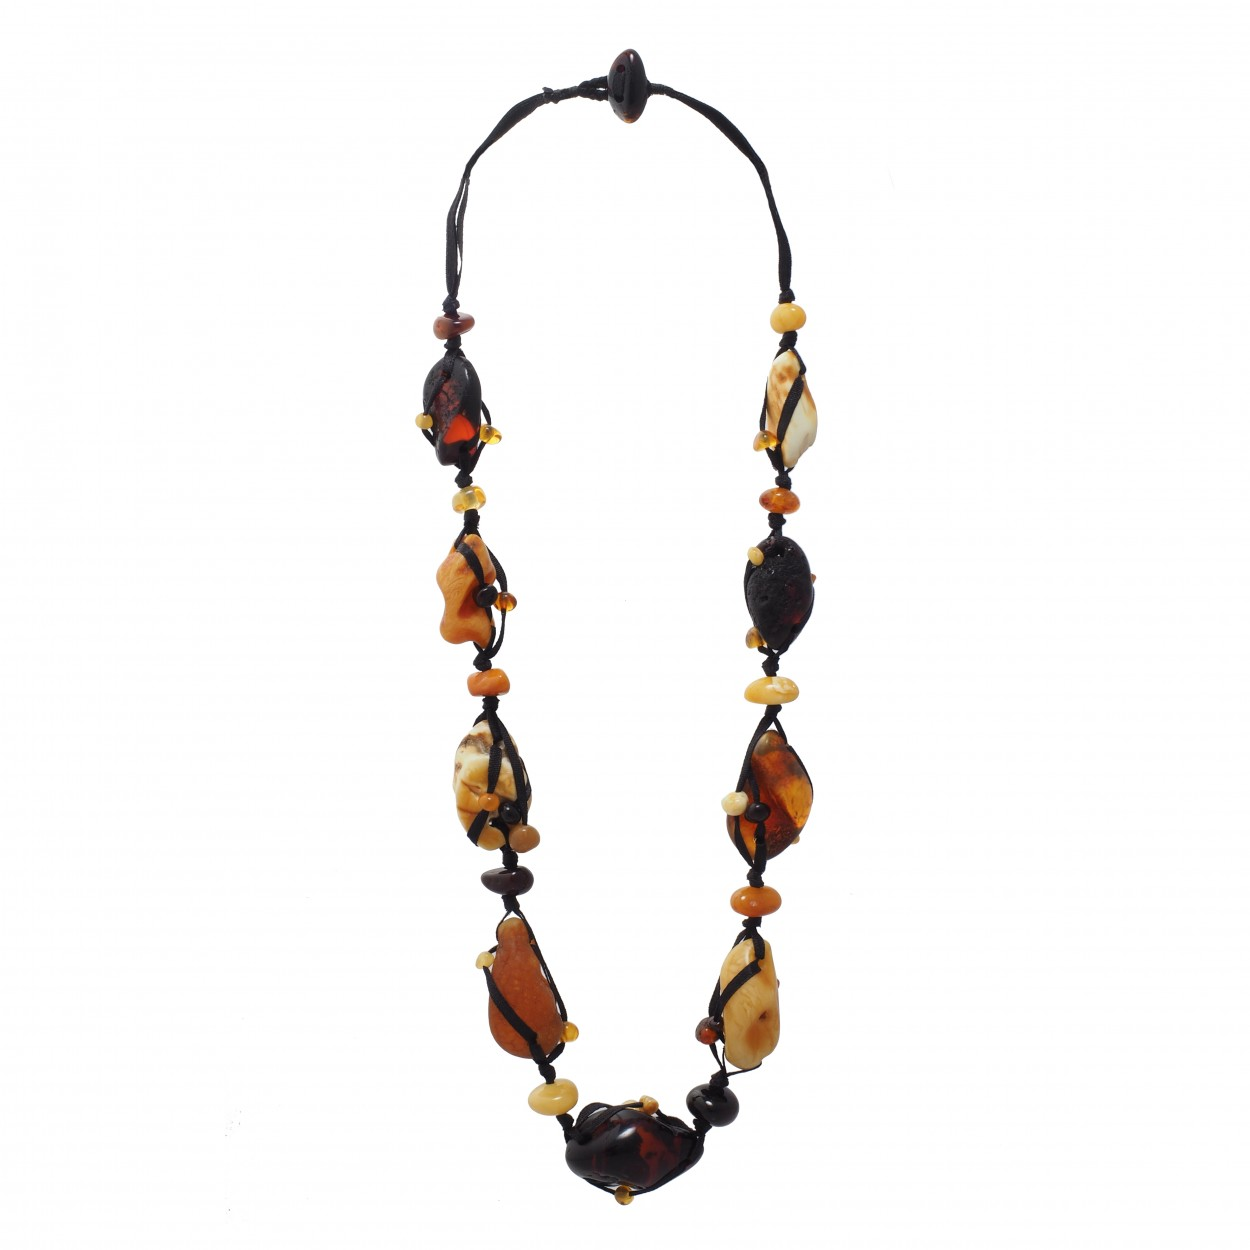 Warm Evening Amber Necklace